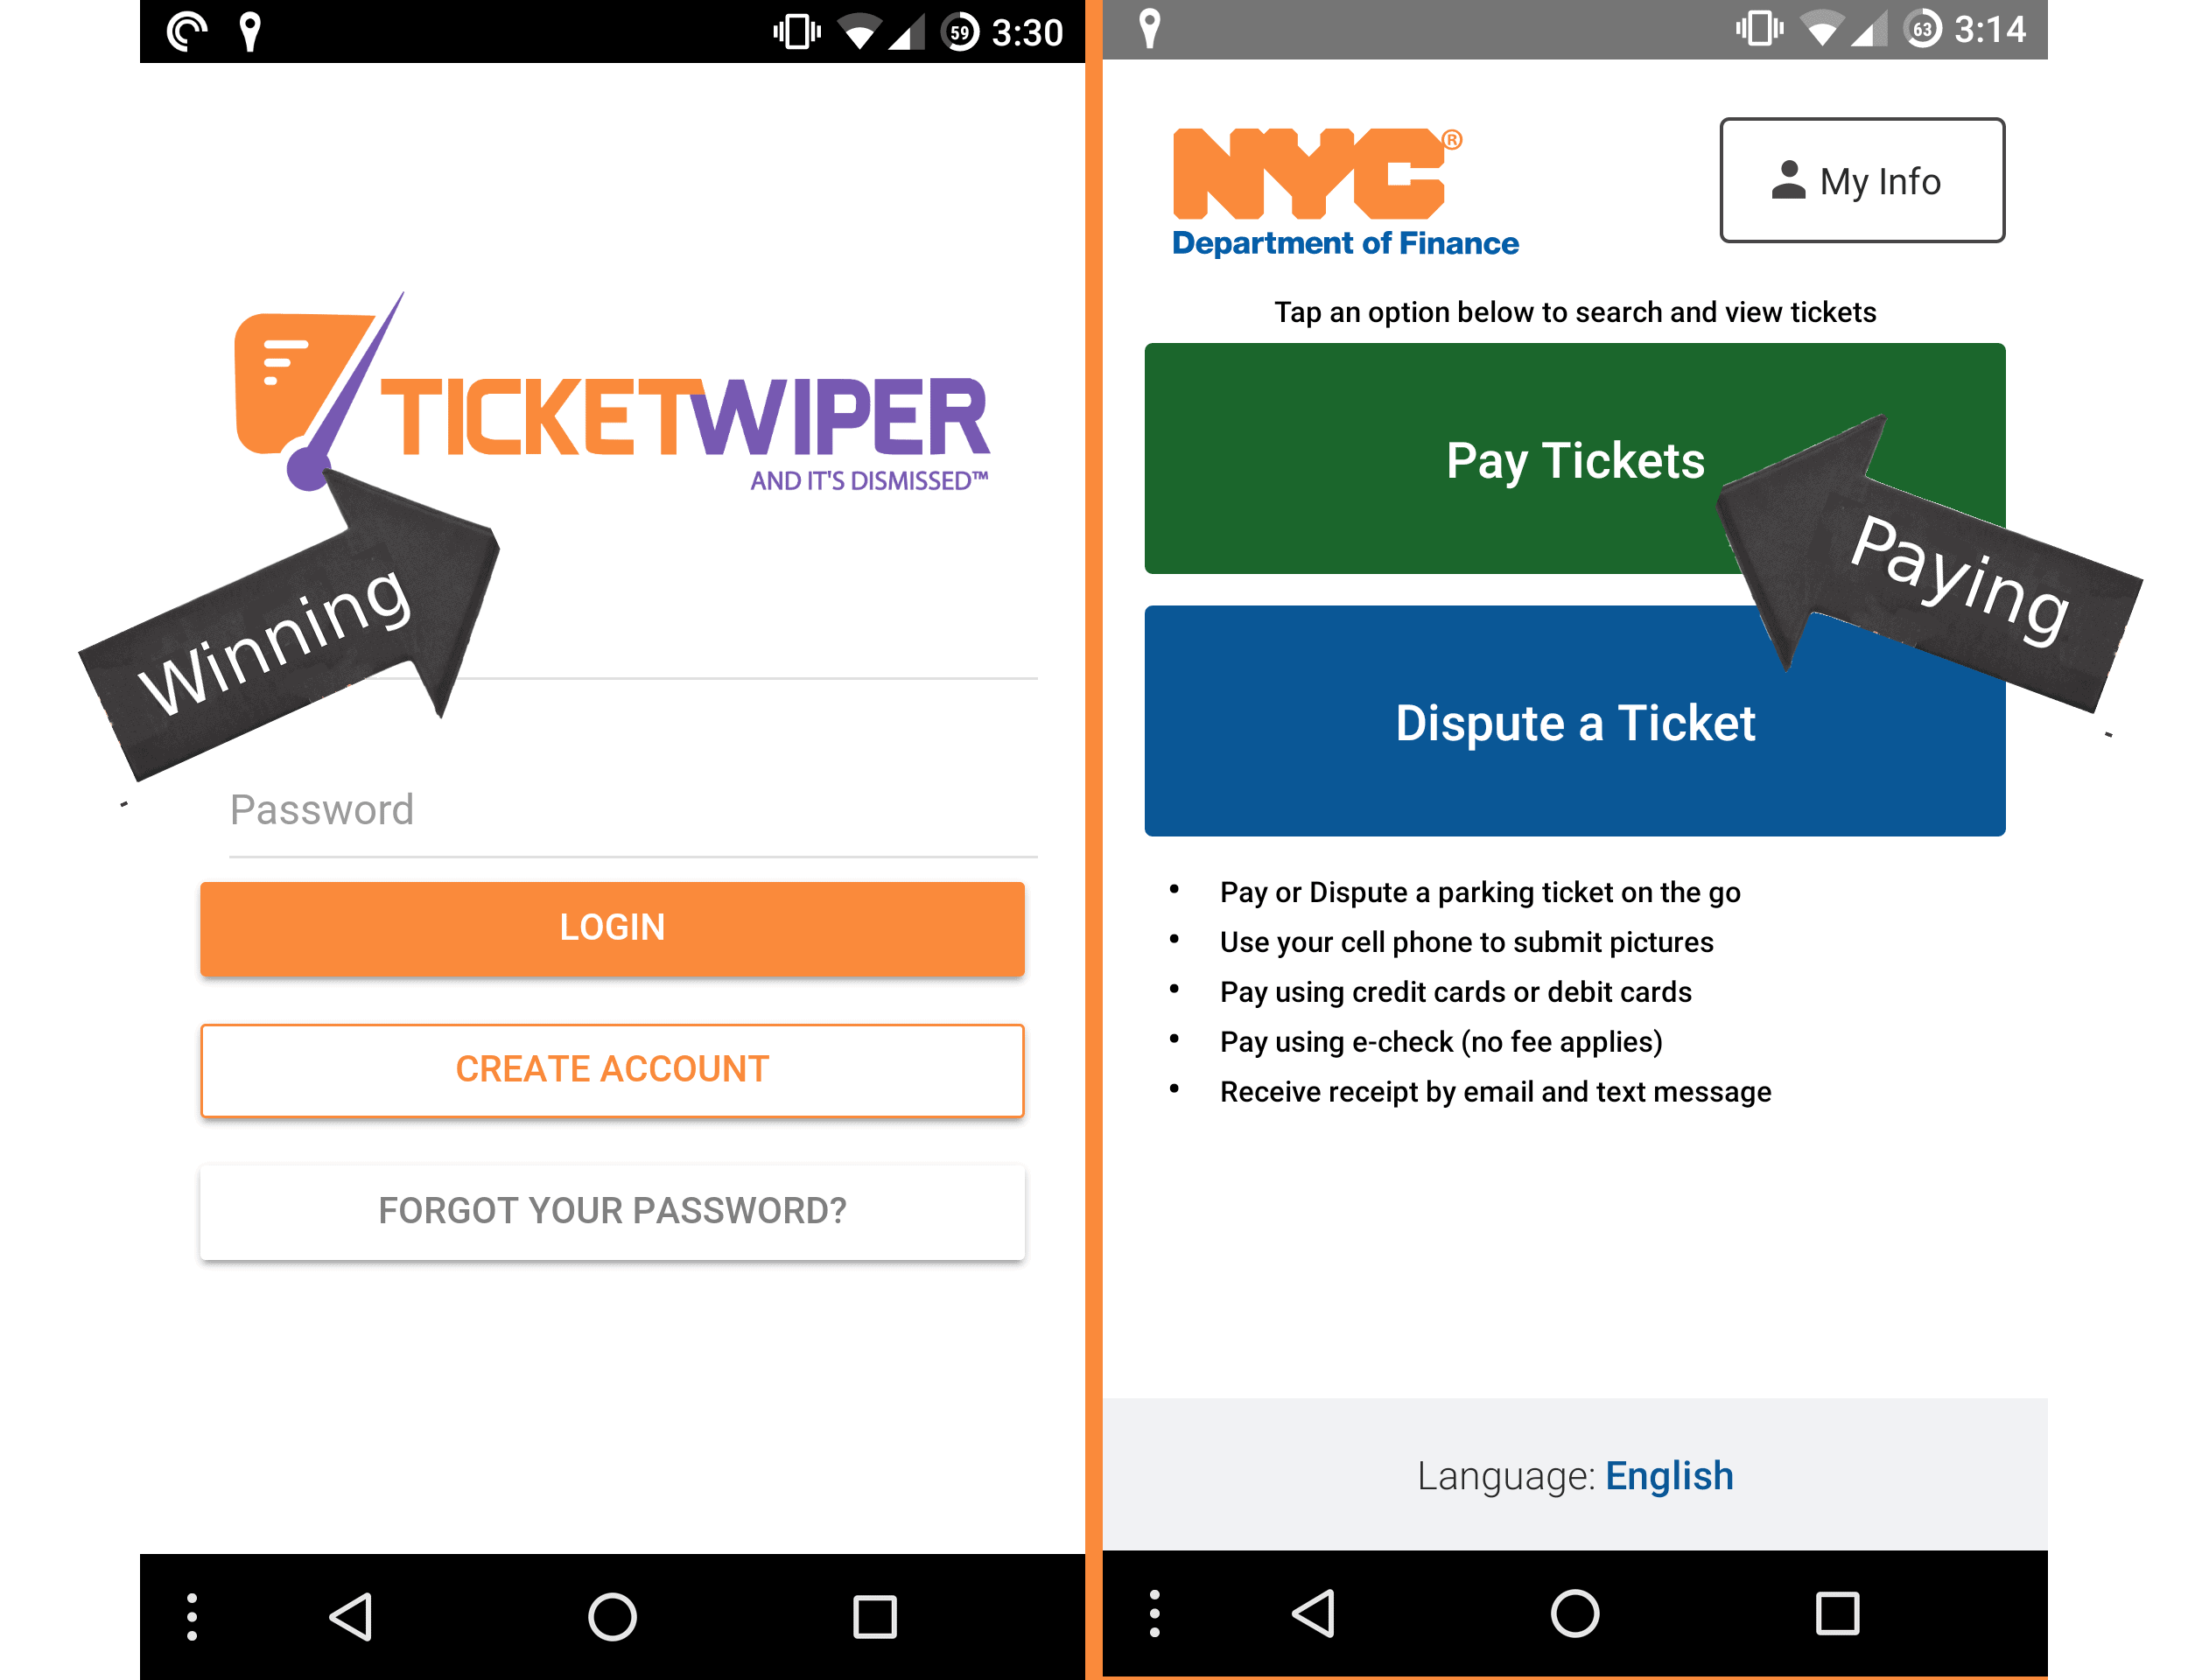 Should I Use Ticket Wiper or NYC s New Parking Ticket App